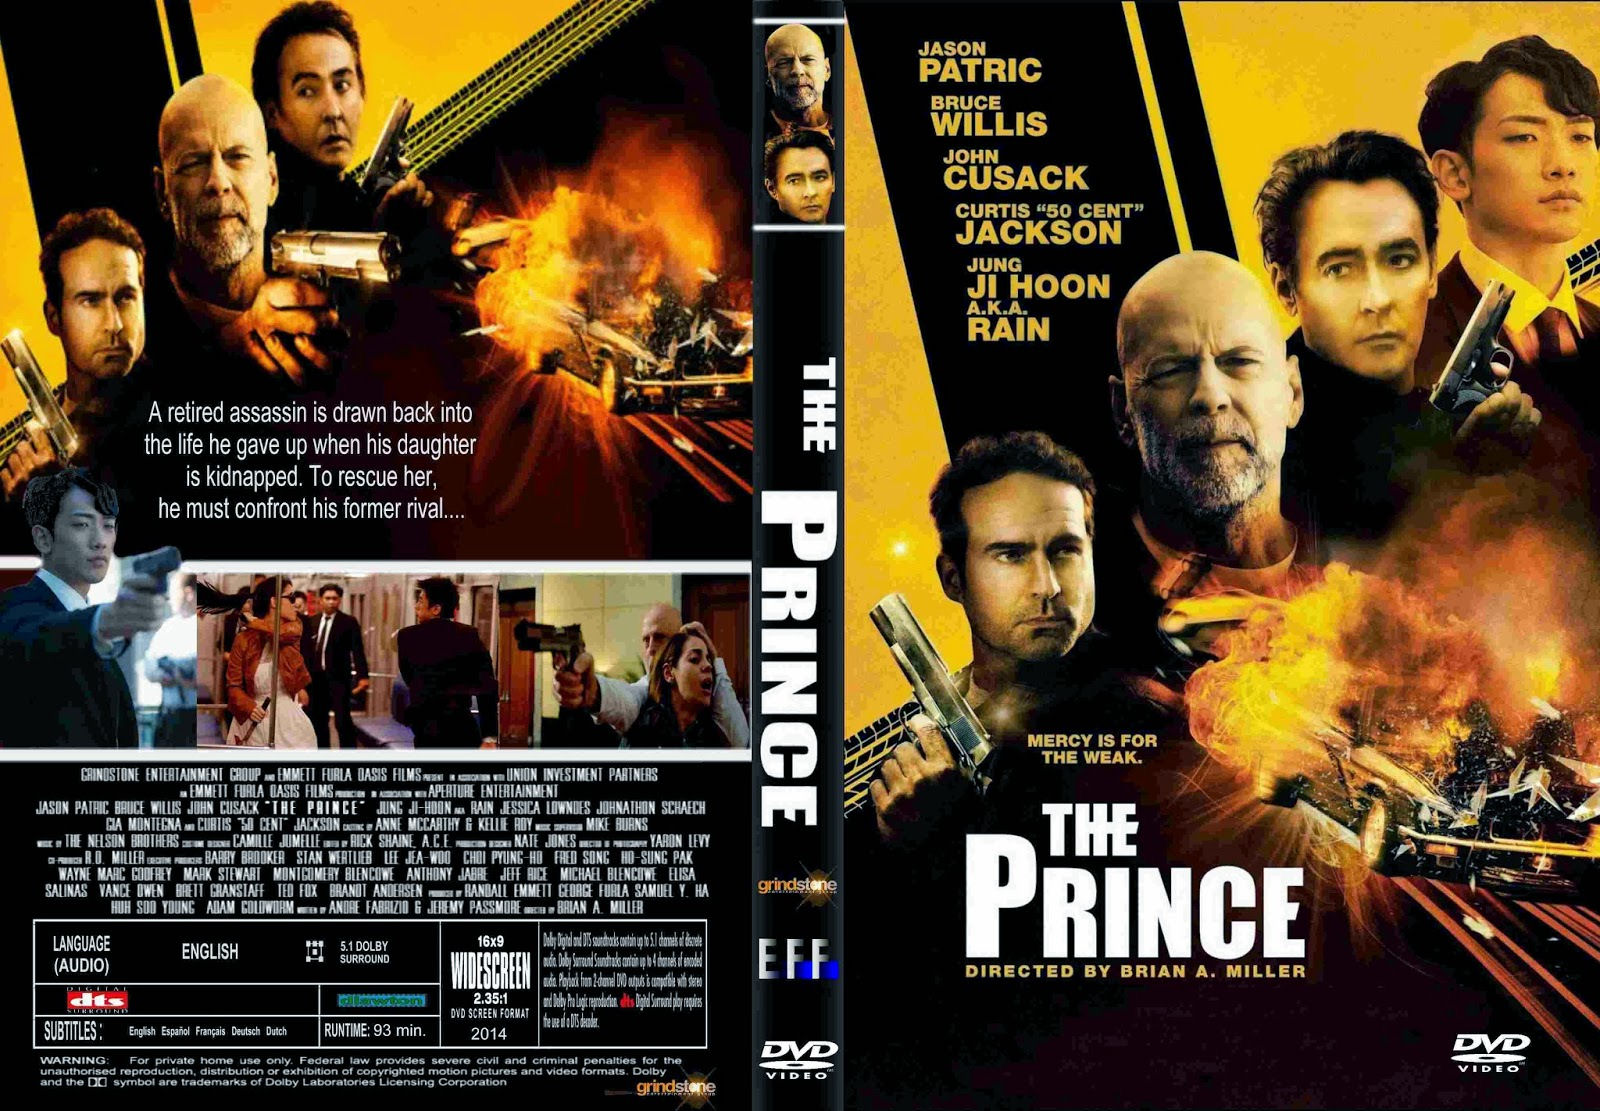 COVERS BOX SK ::: The prince (2014) - high quality DVD / Blueray / Movie